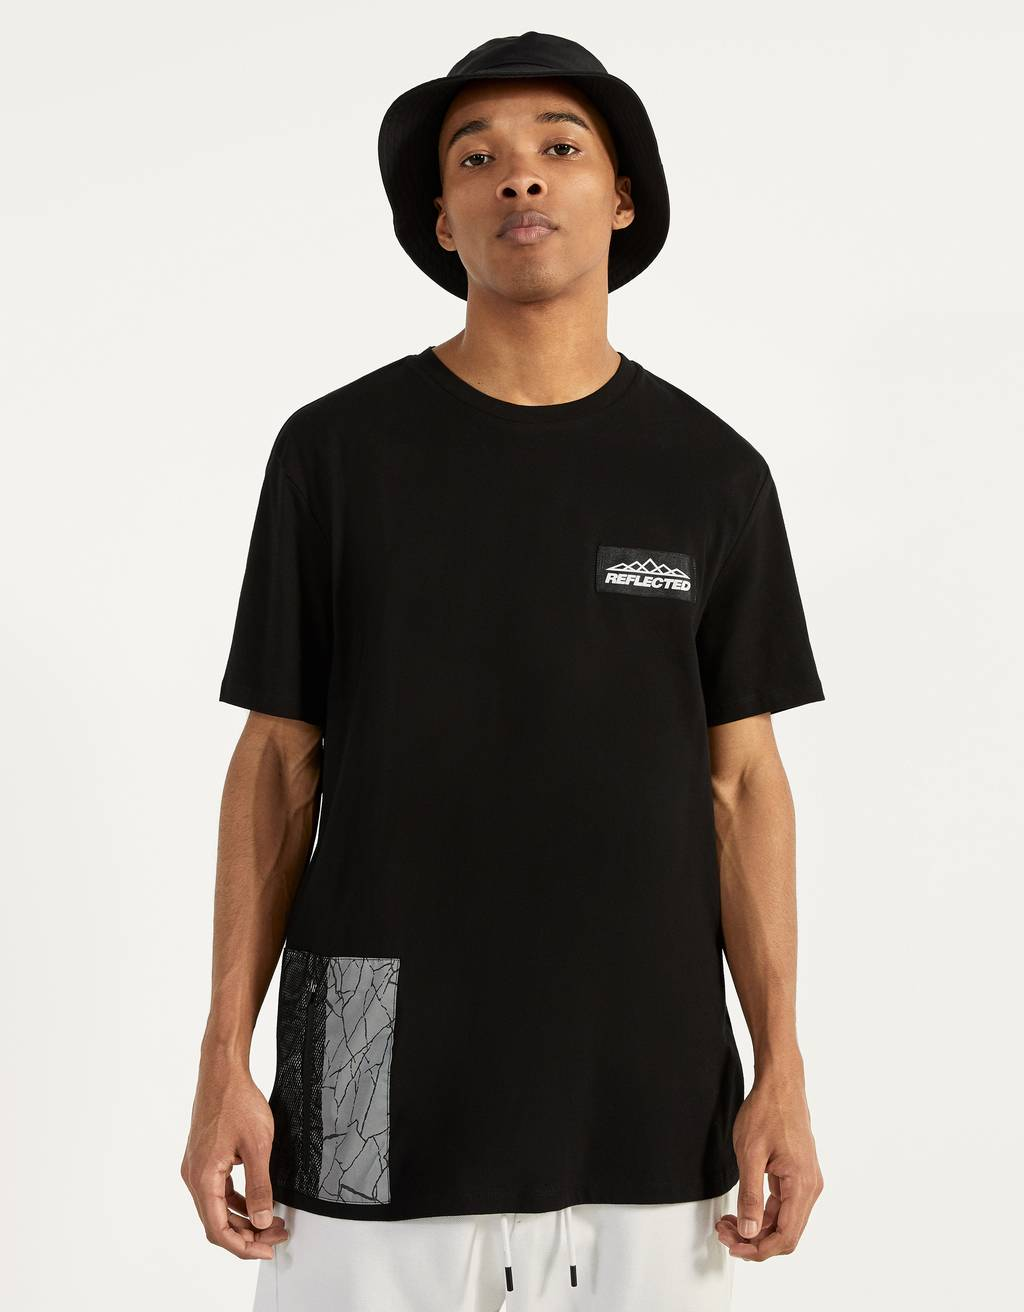 T-shirt with reflective pocket